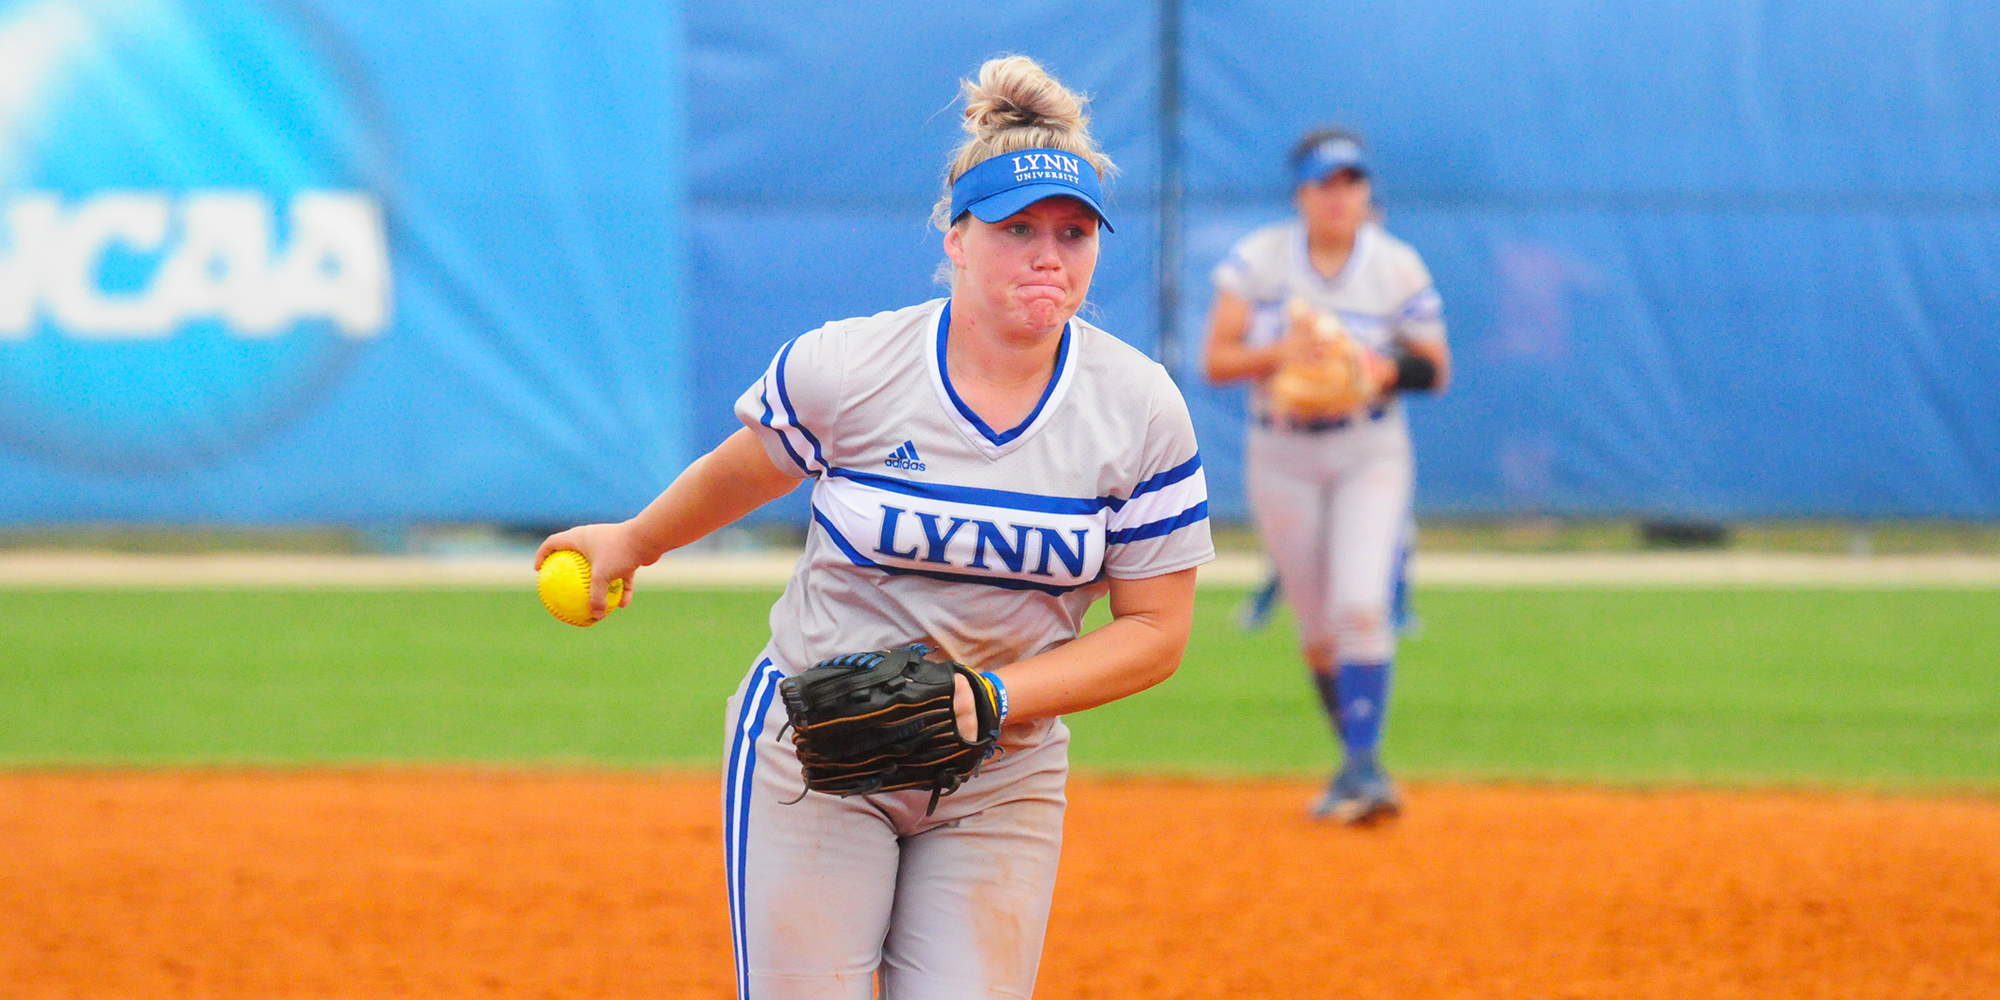 Sheffield Marches on Saints in Softball Split